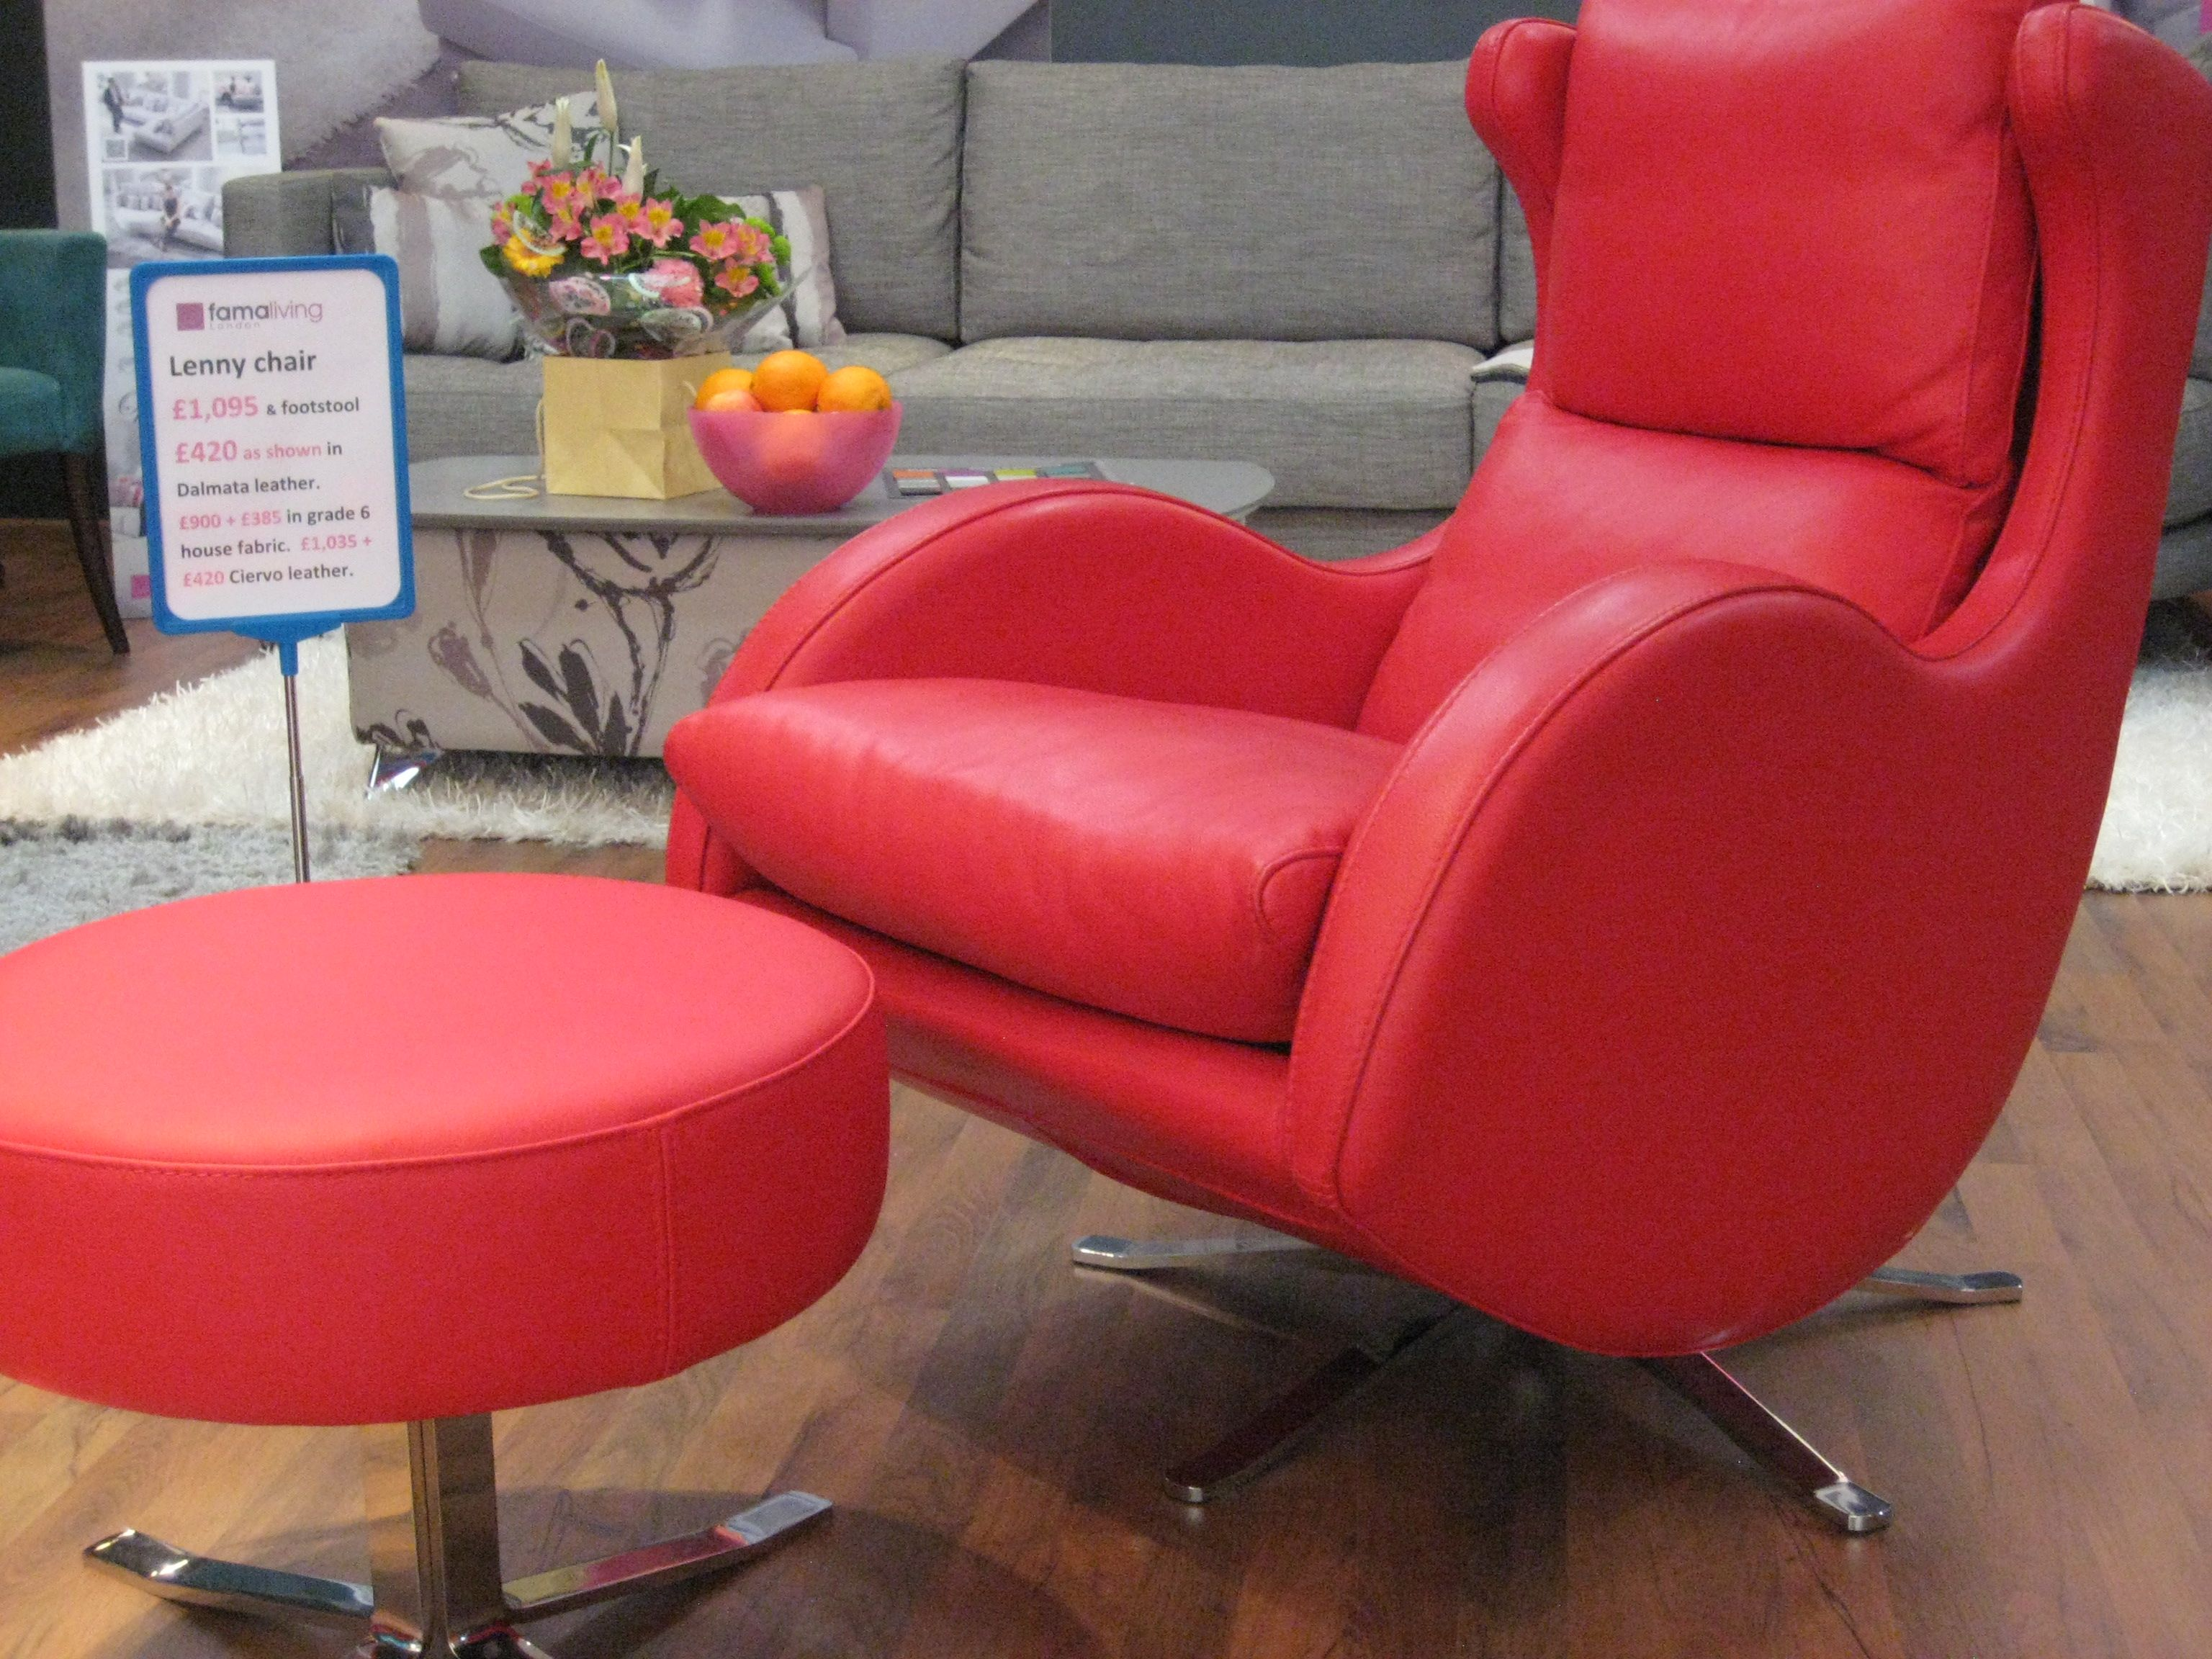 Fun and much loved red leather 62 swivel chair and